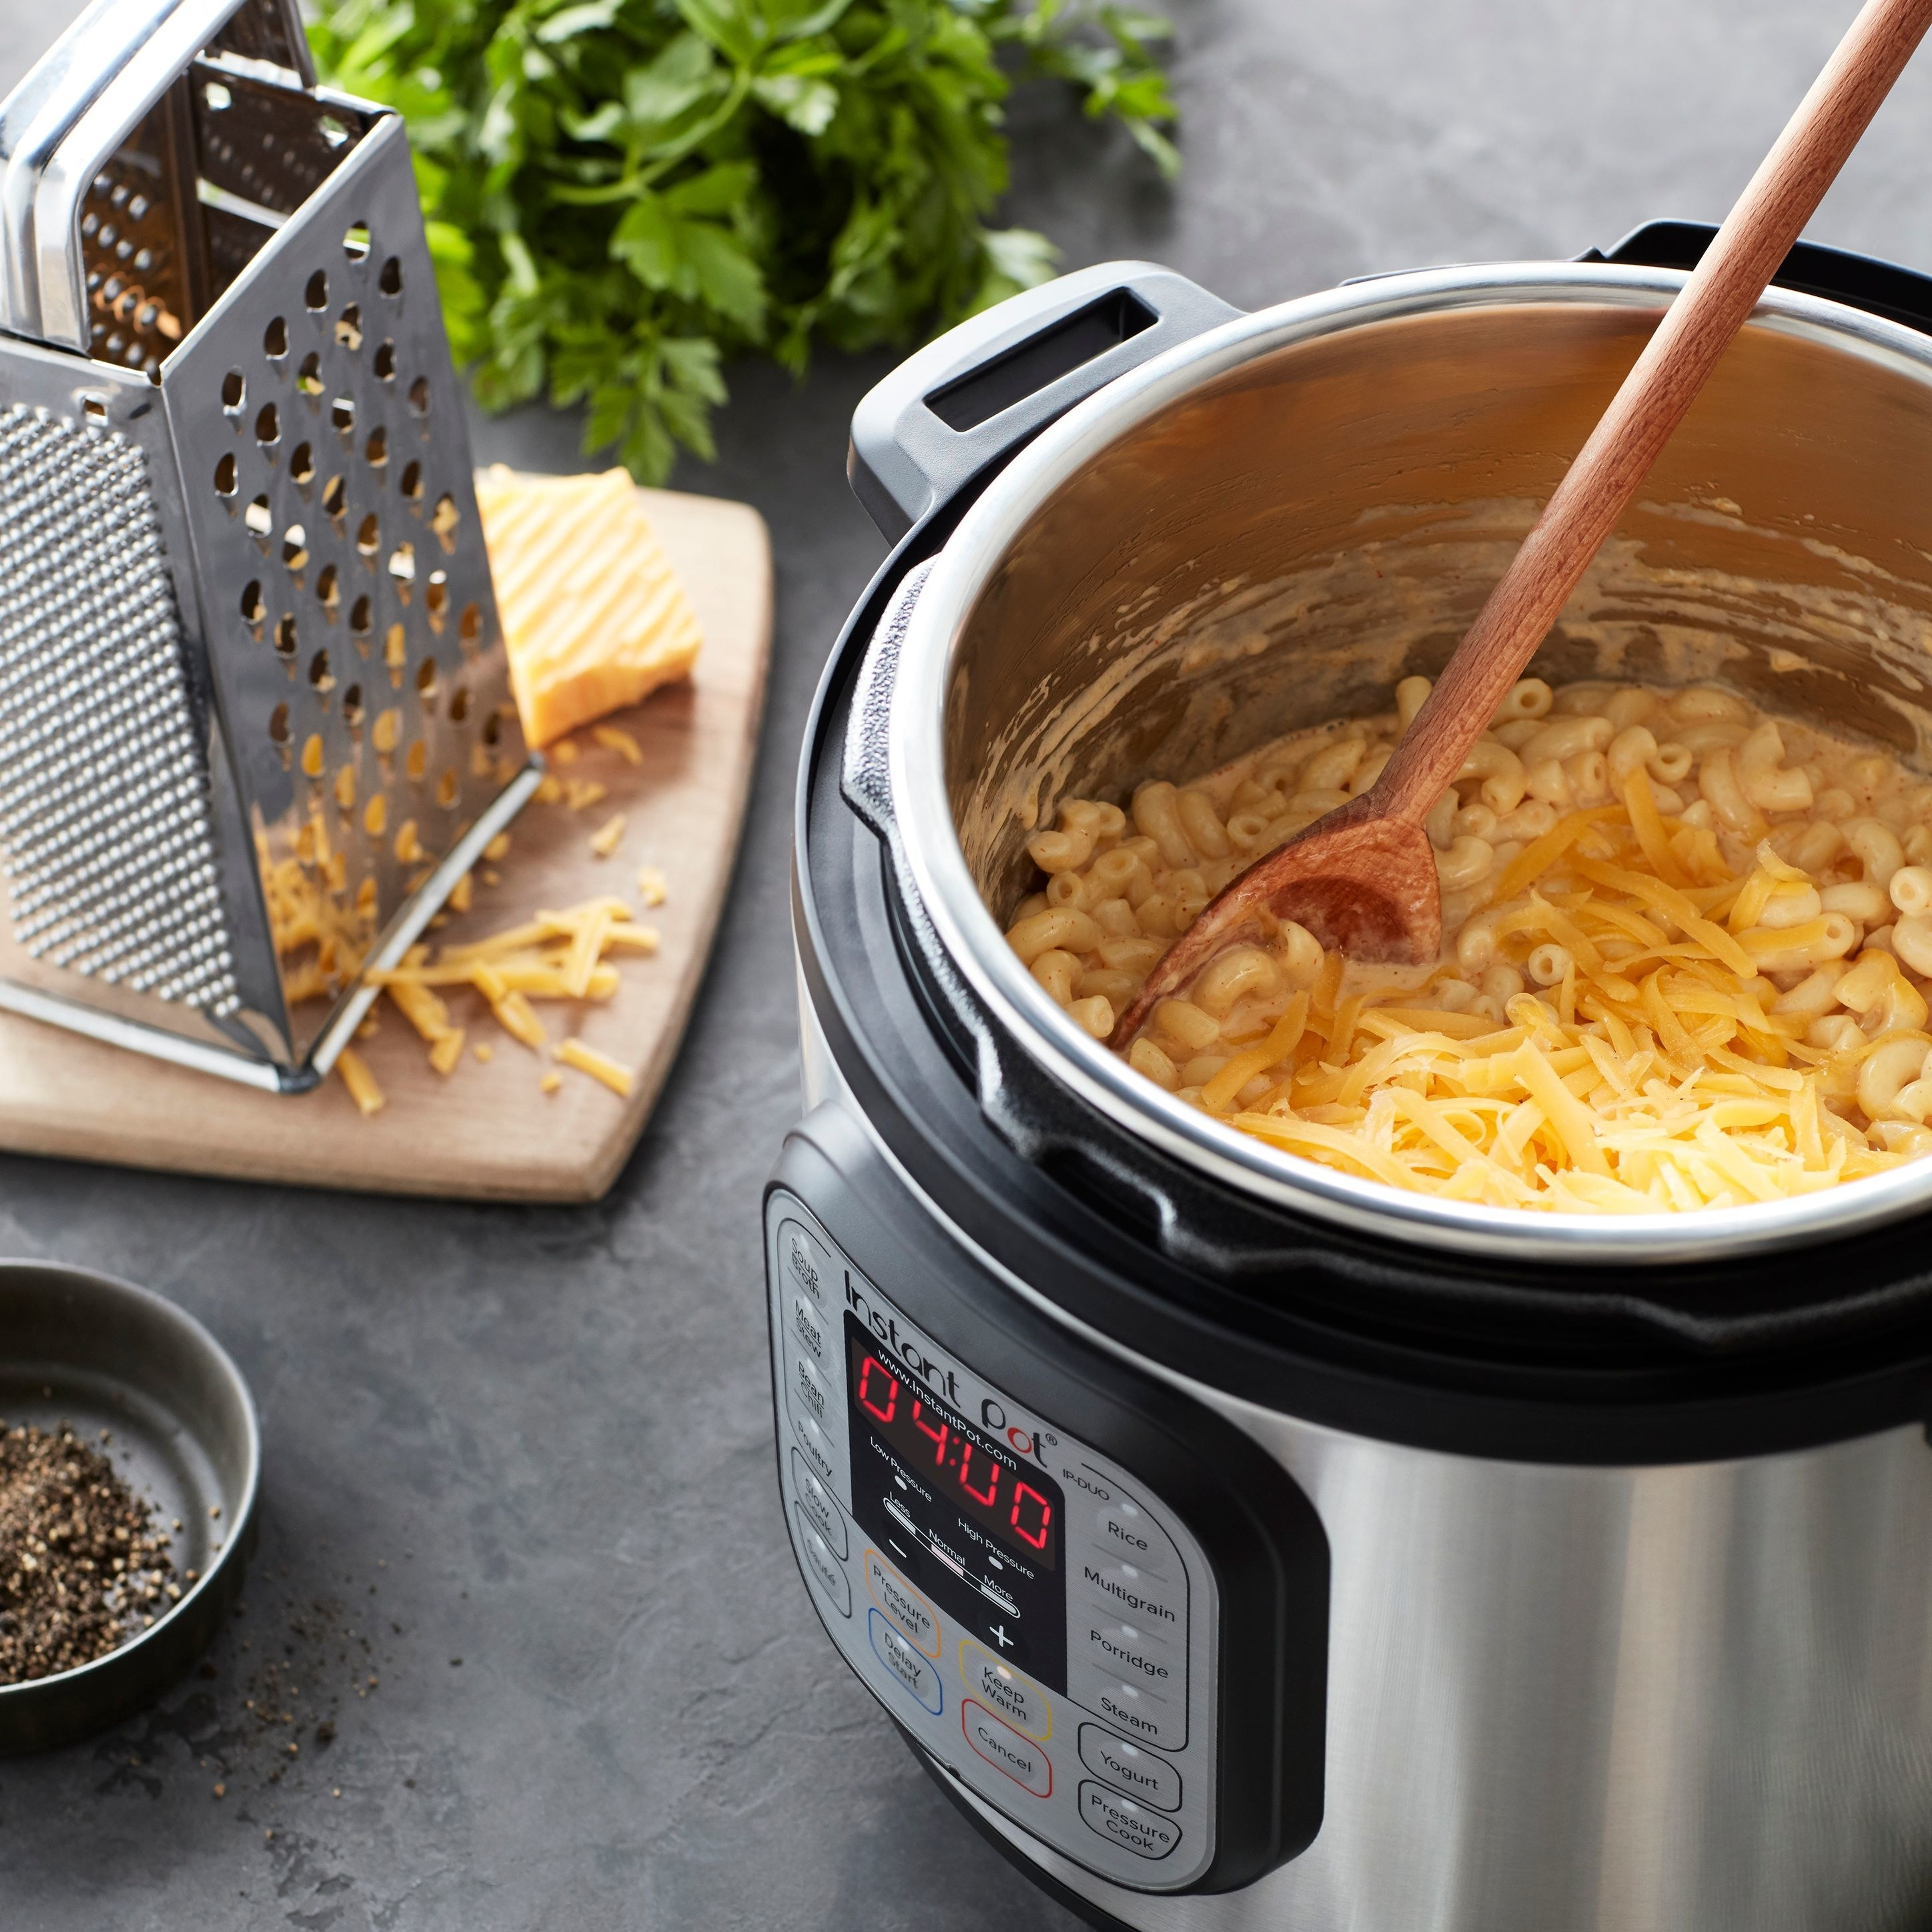 The Instant Pot cooking mac n cheese